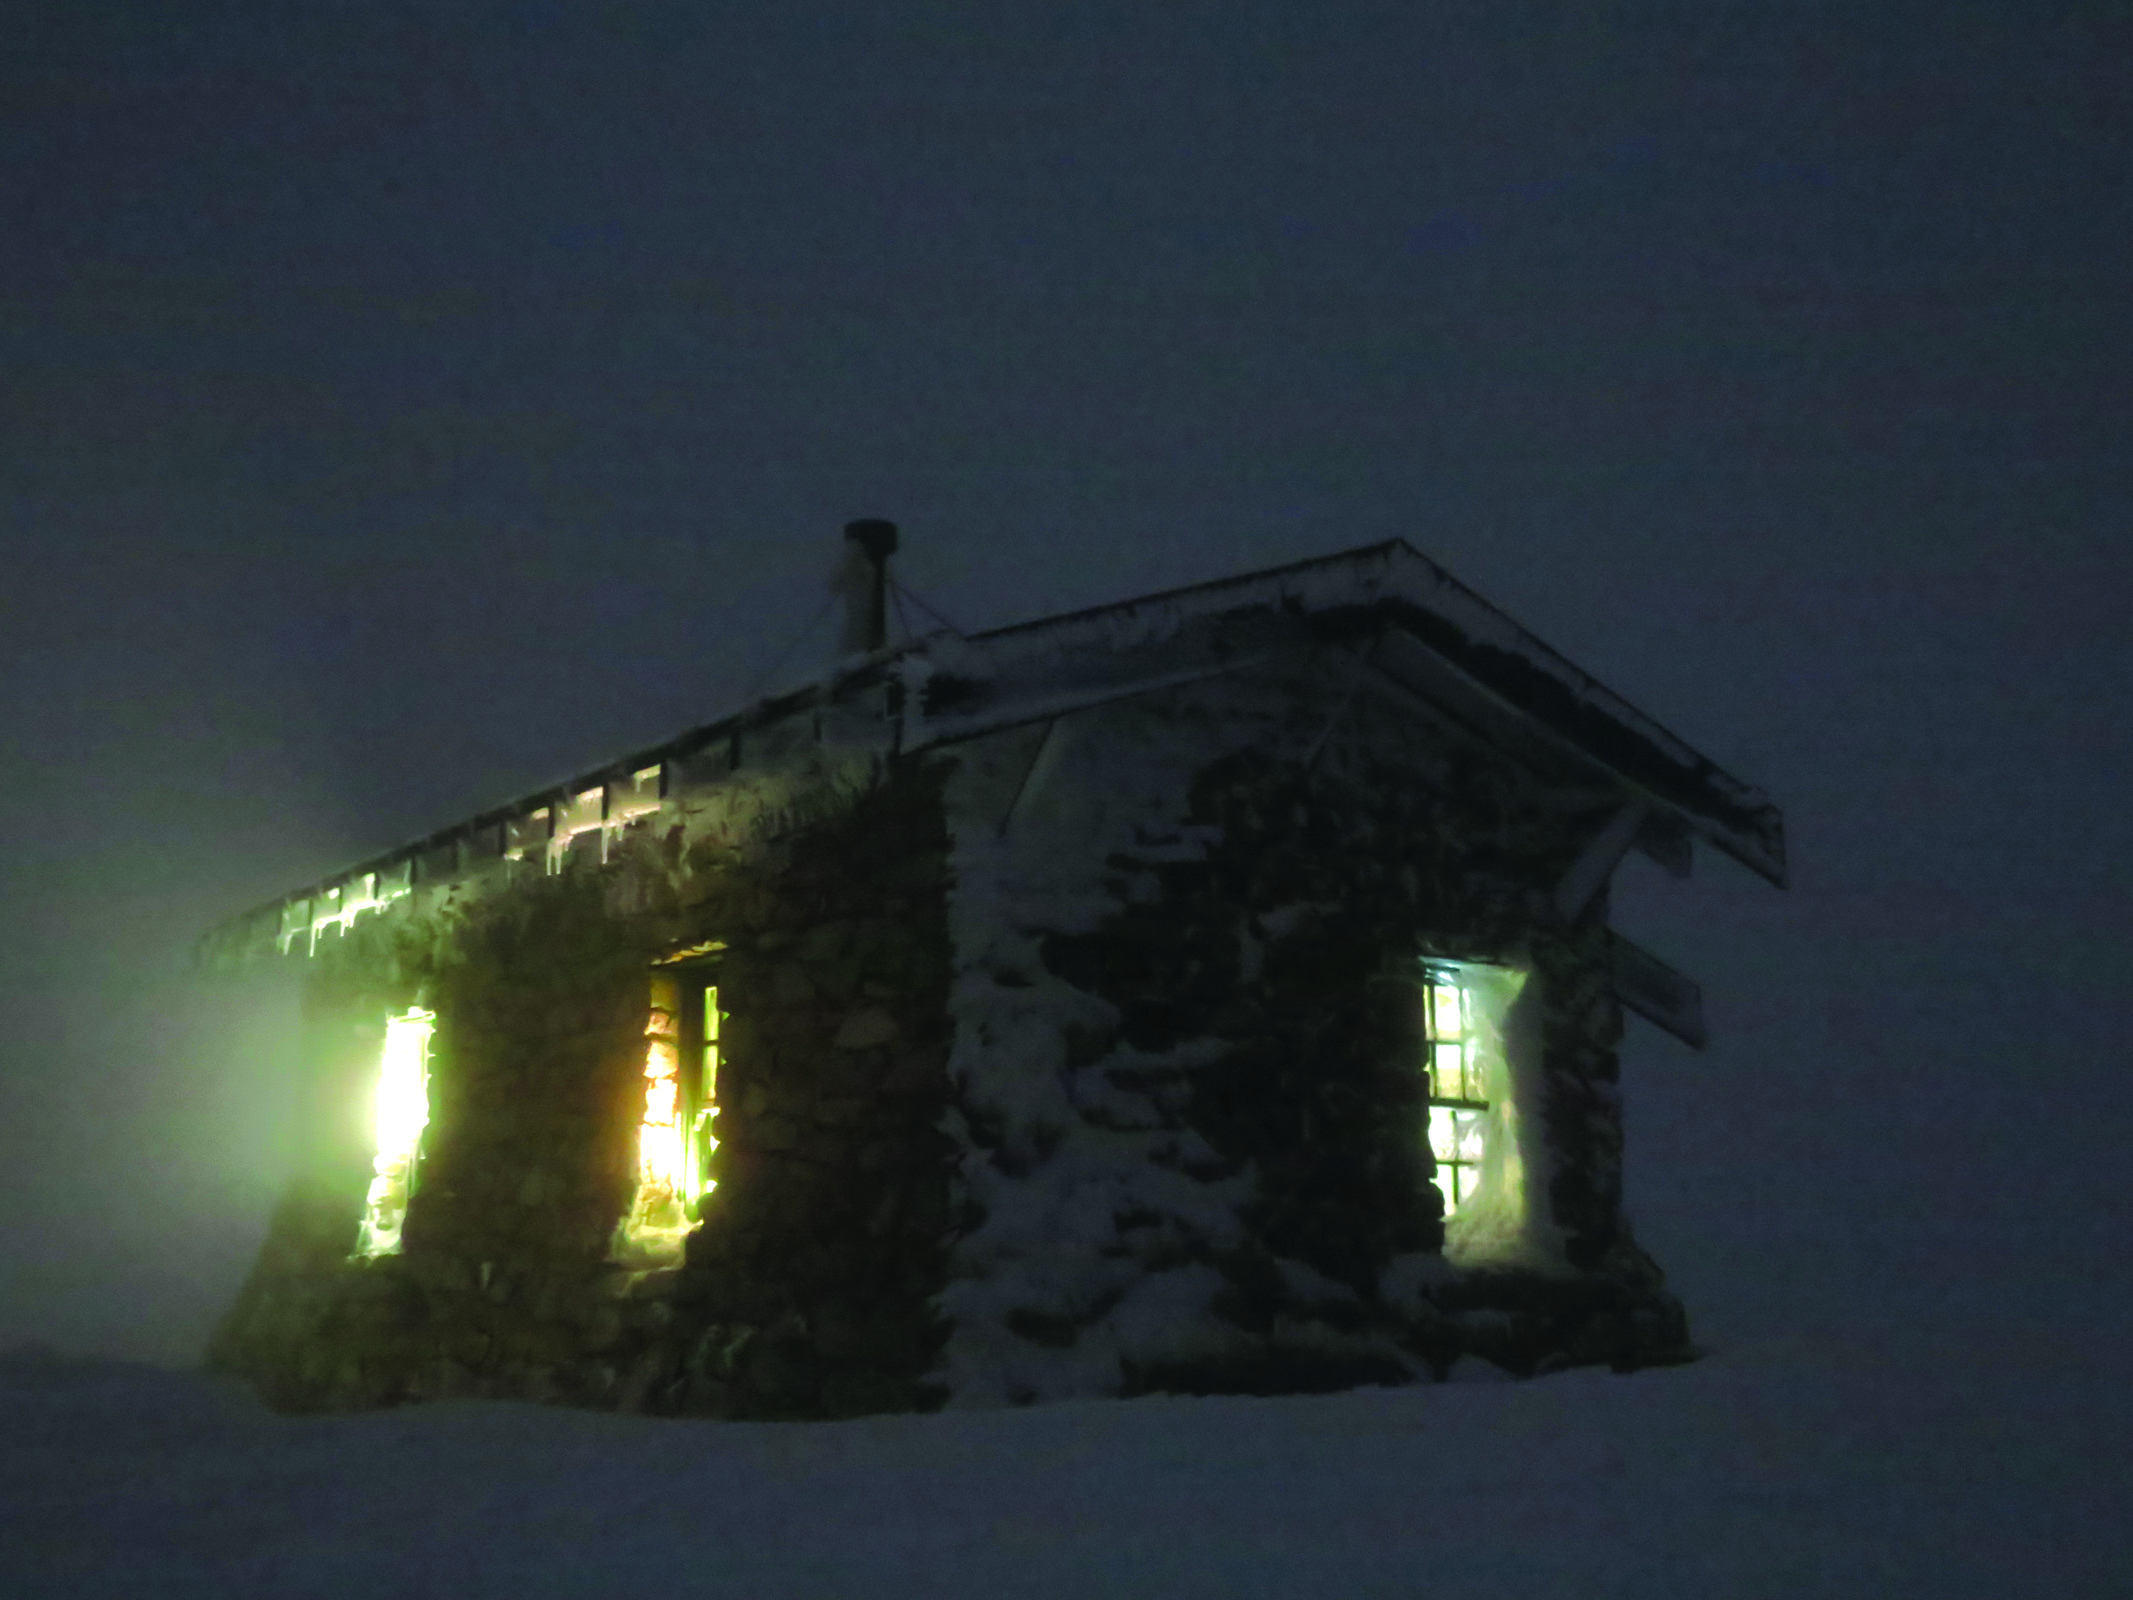 The hut, aglow from inside at night